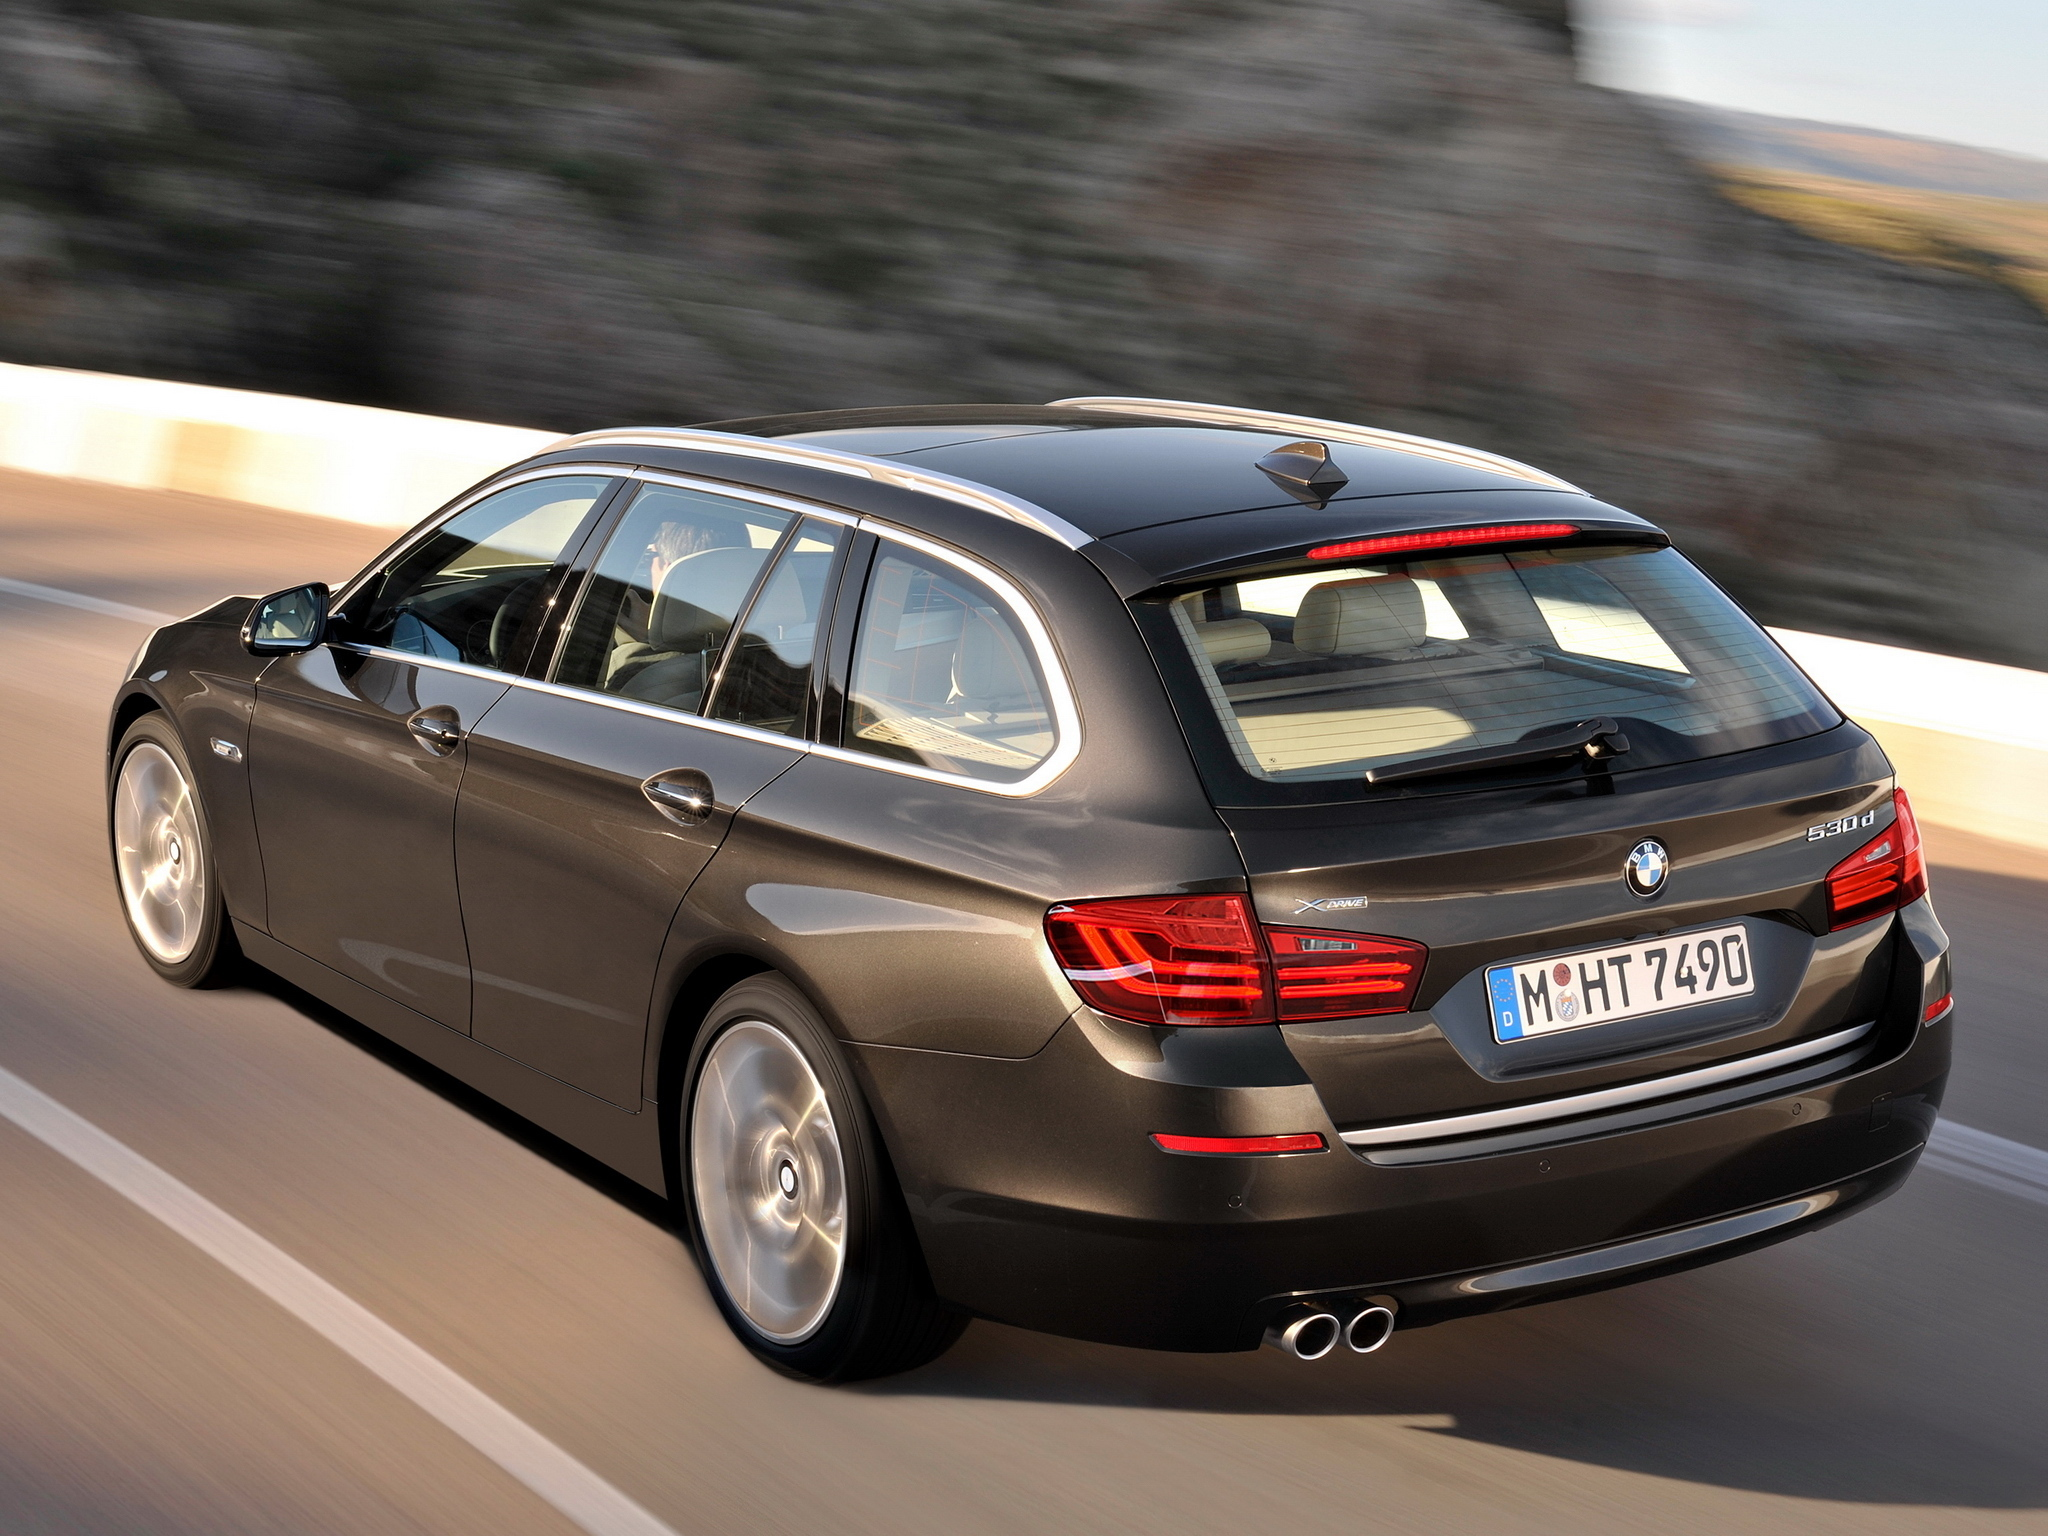 High Definition Wallpaper Of Bmw 530d Image Of Xdrive